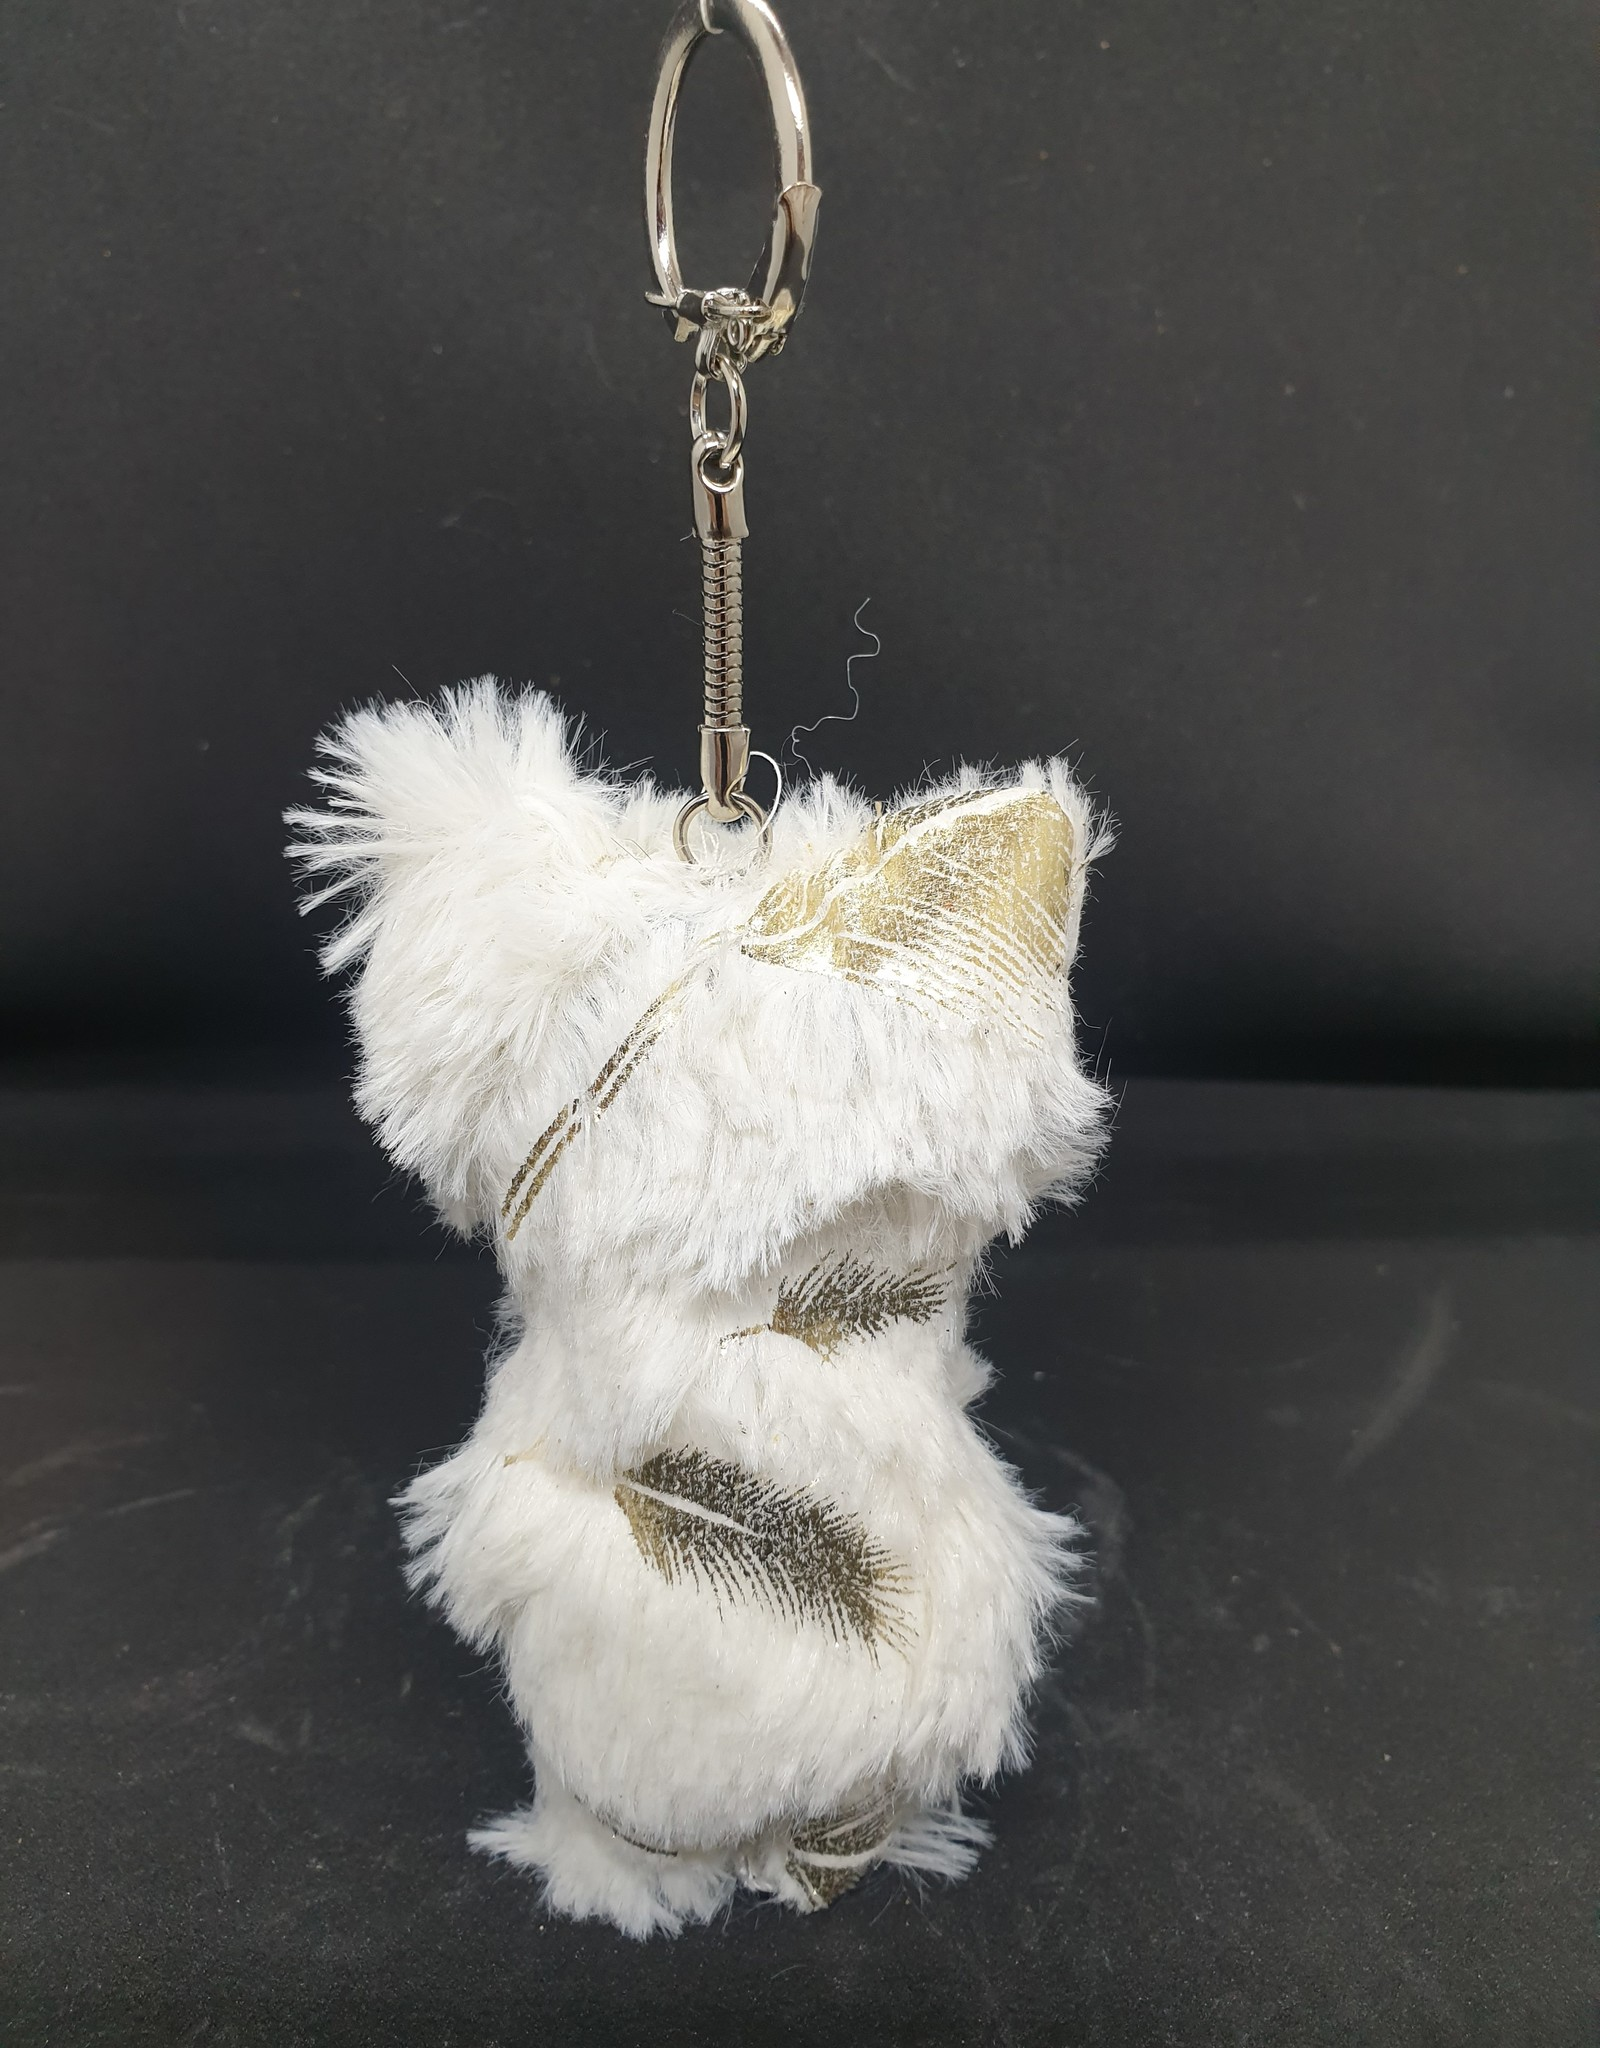 seazido - wevyra luck and protection doll keychain  (gold feather-white)